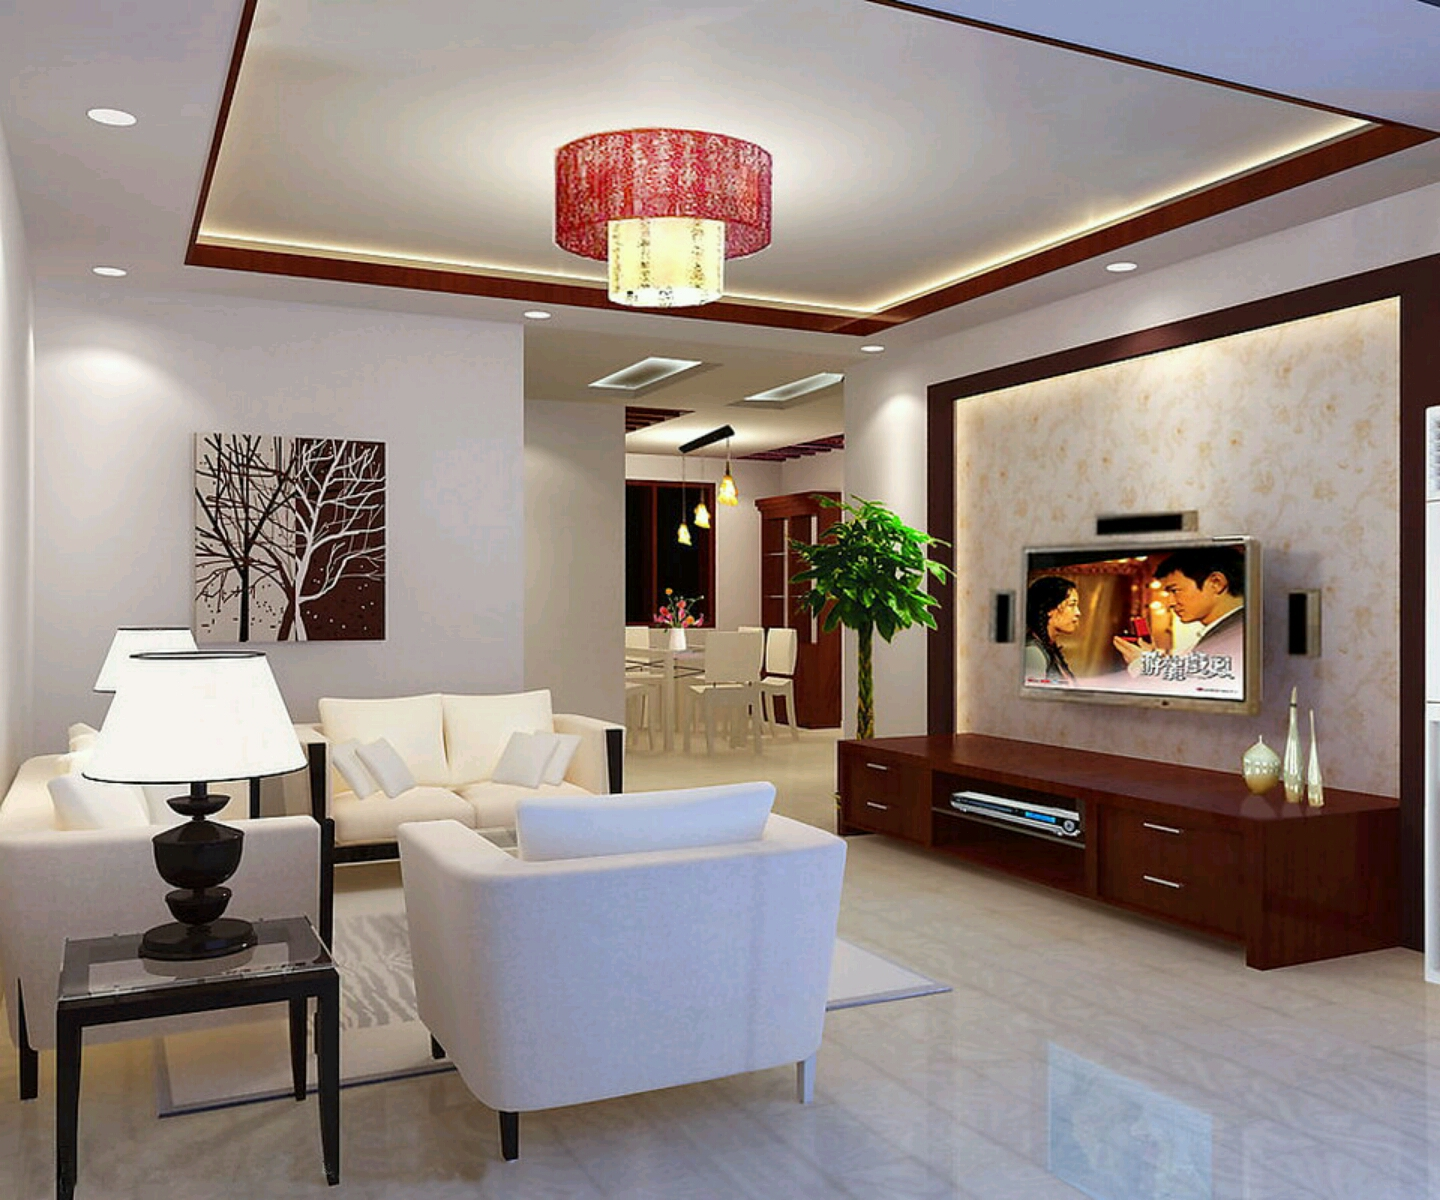 New home designs latest modern interior decoration for Latest interior design ideas